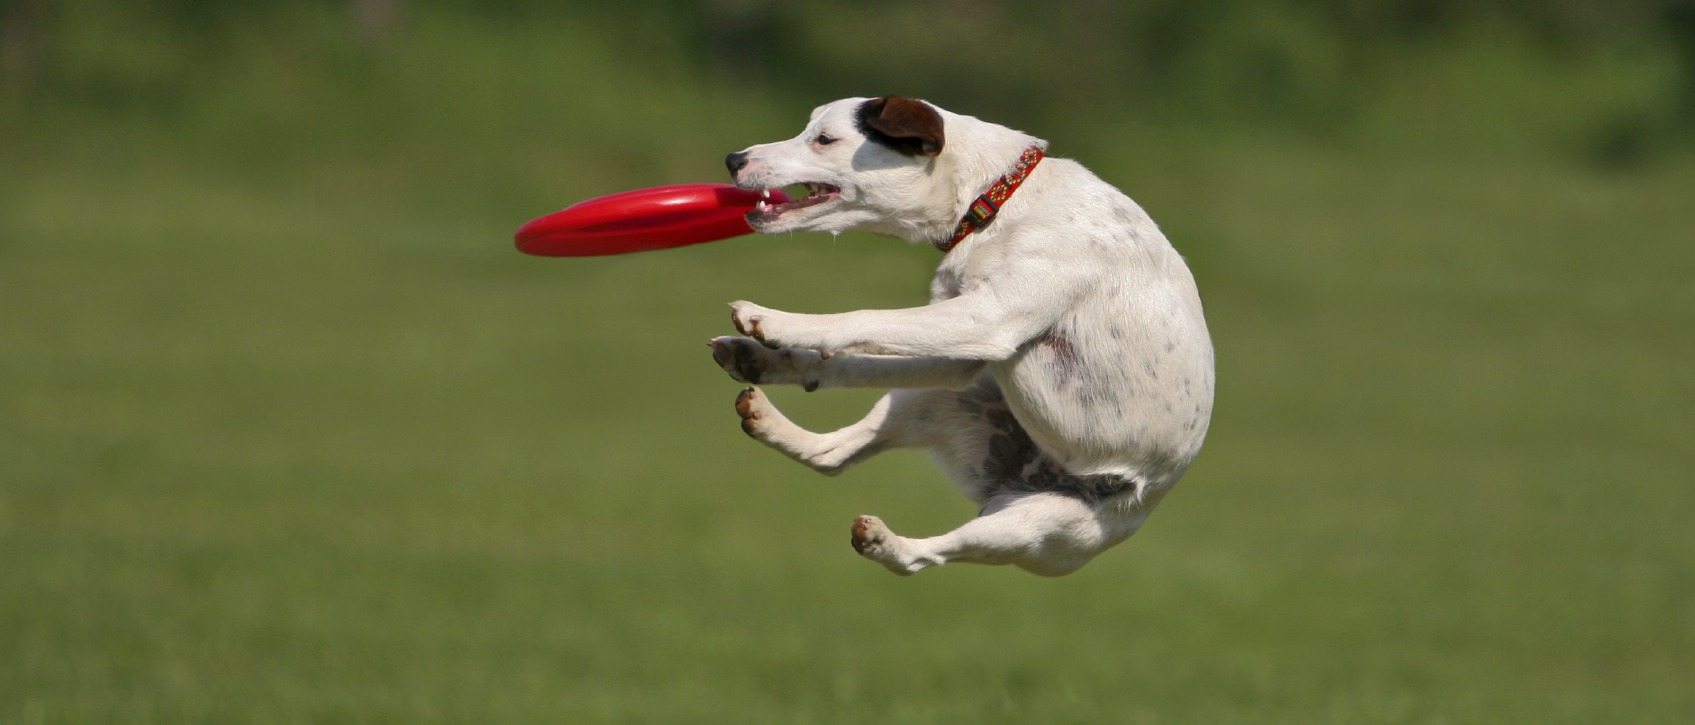 The Significance of the Frisbee